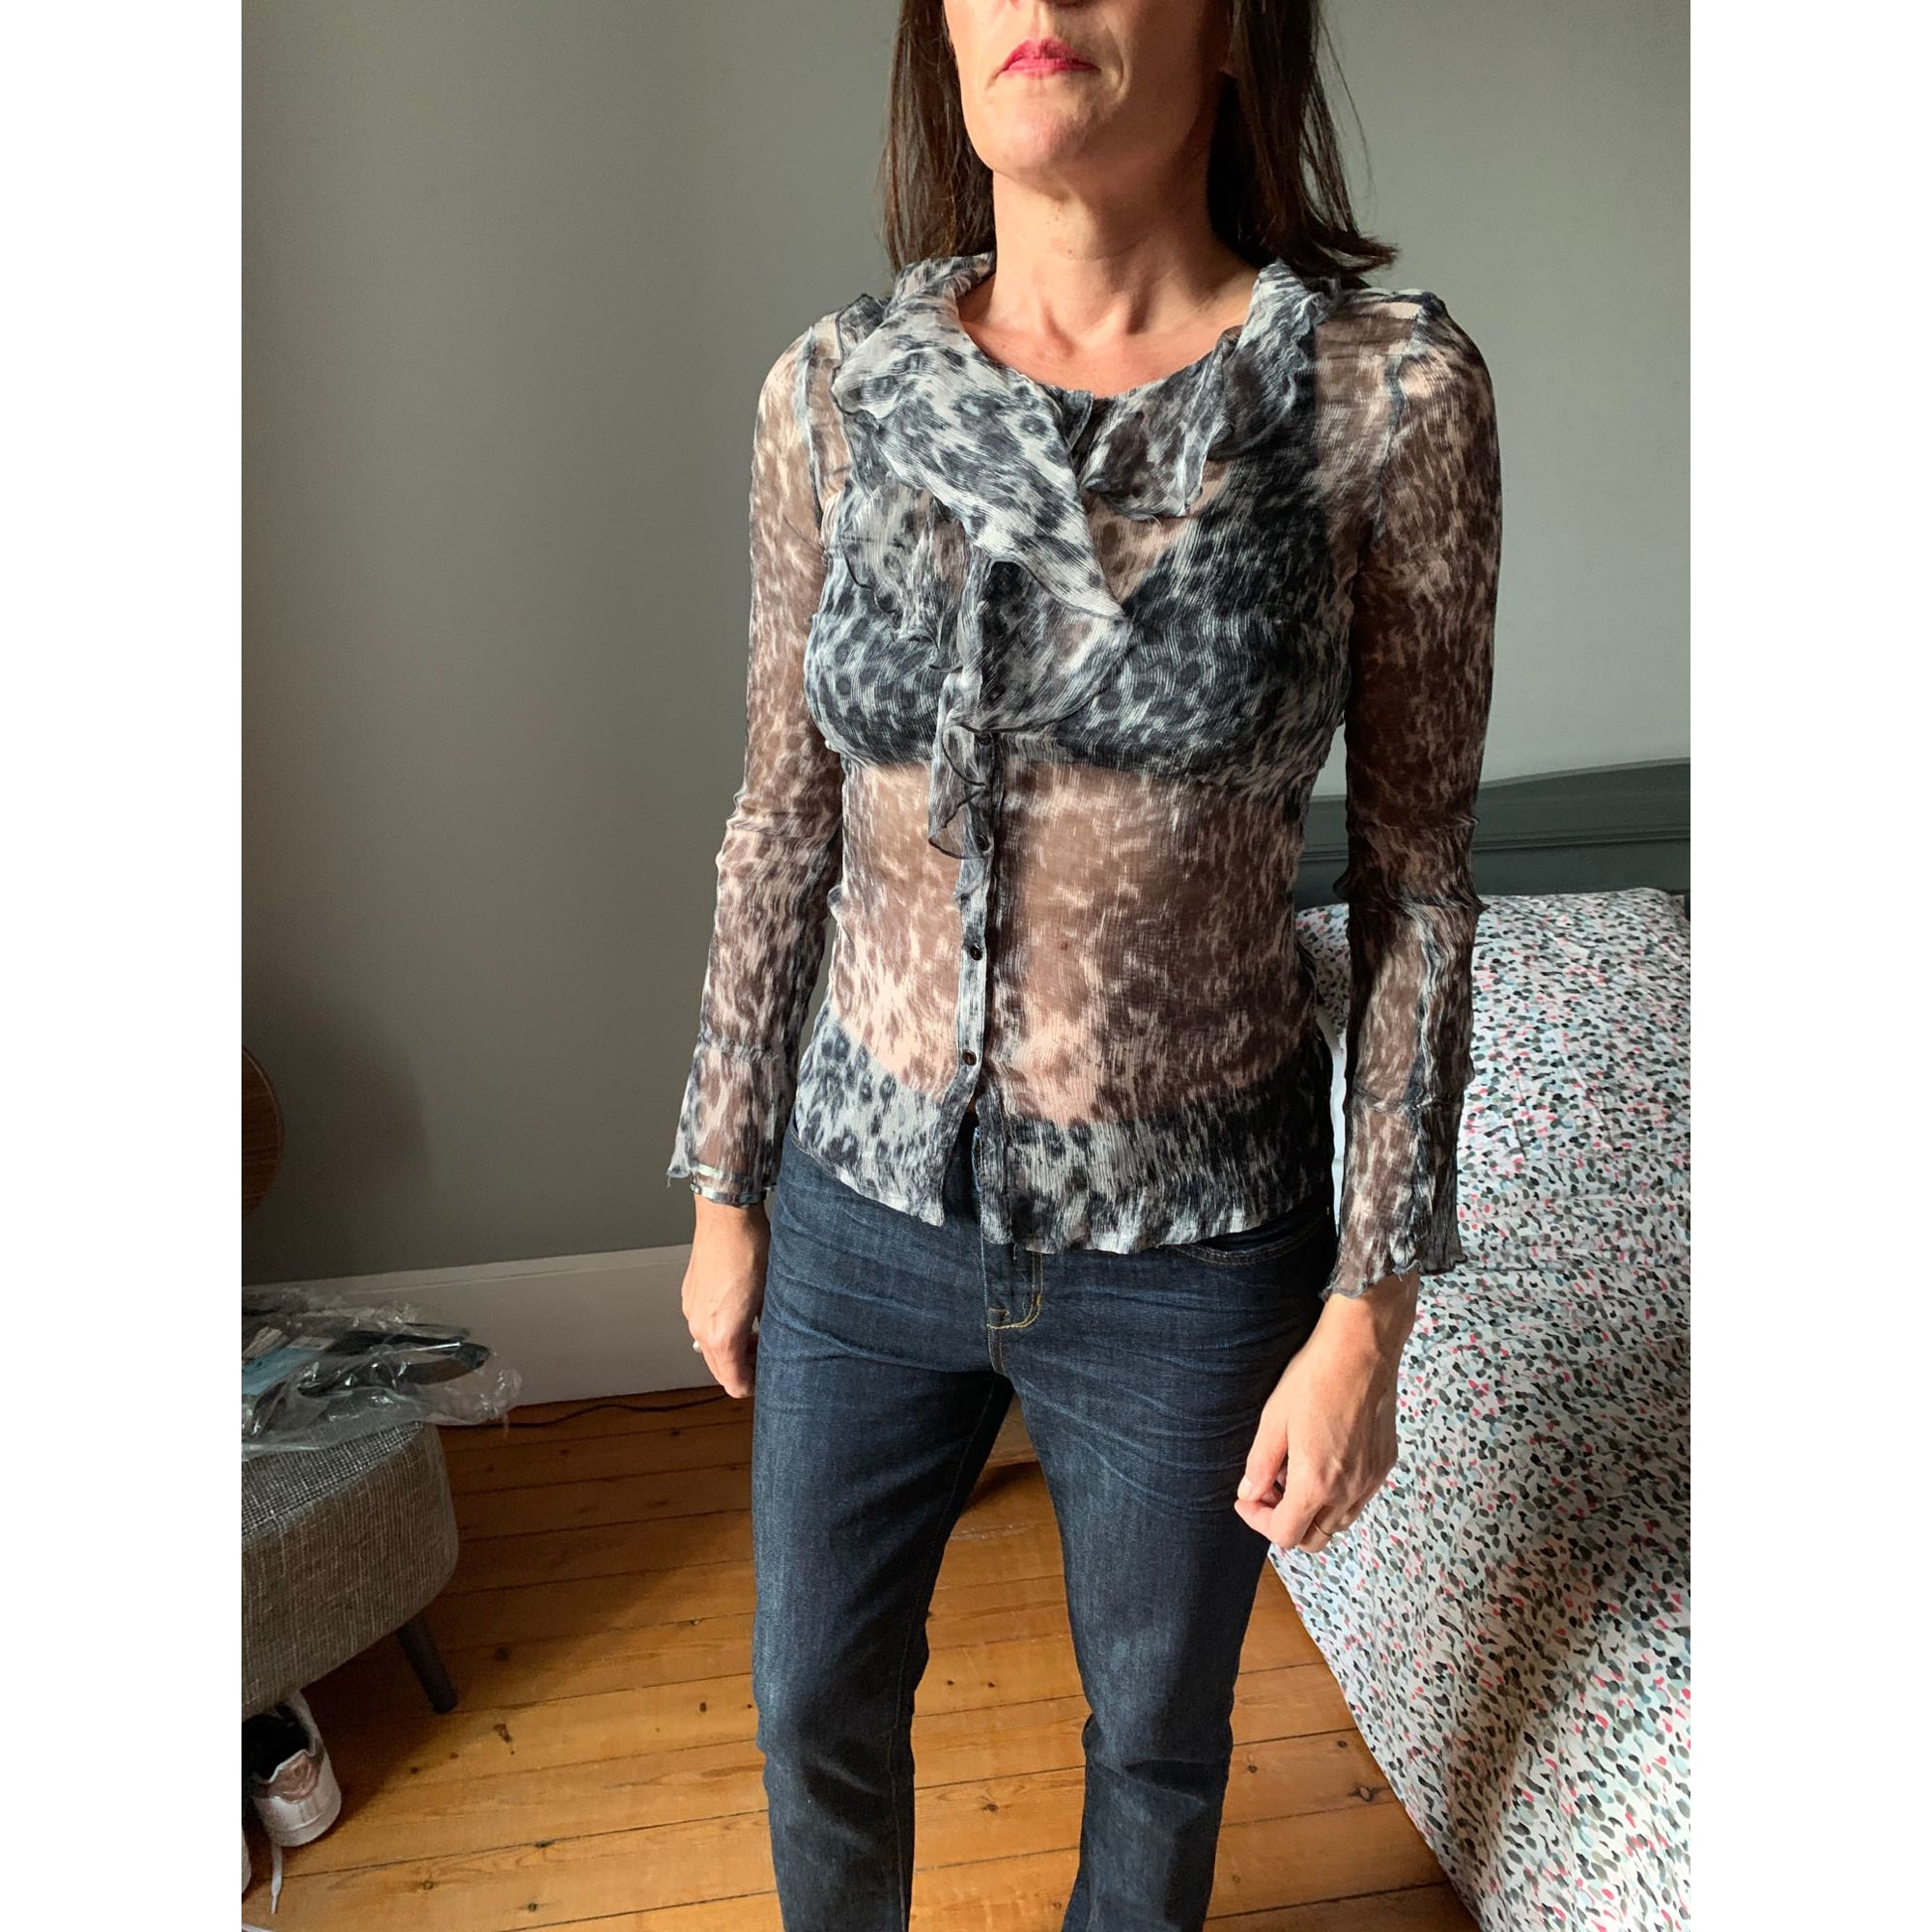 Blouse SINÉQUANONE Gris, anthracite